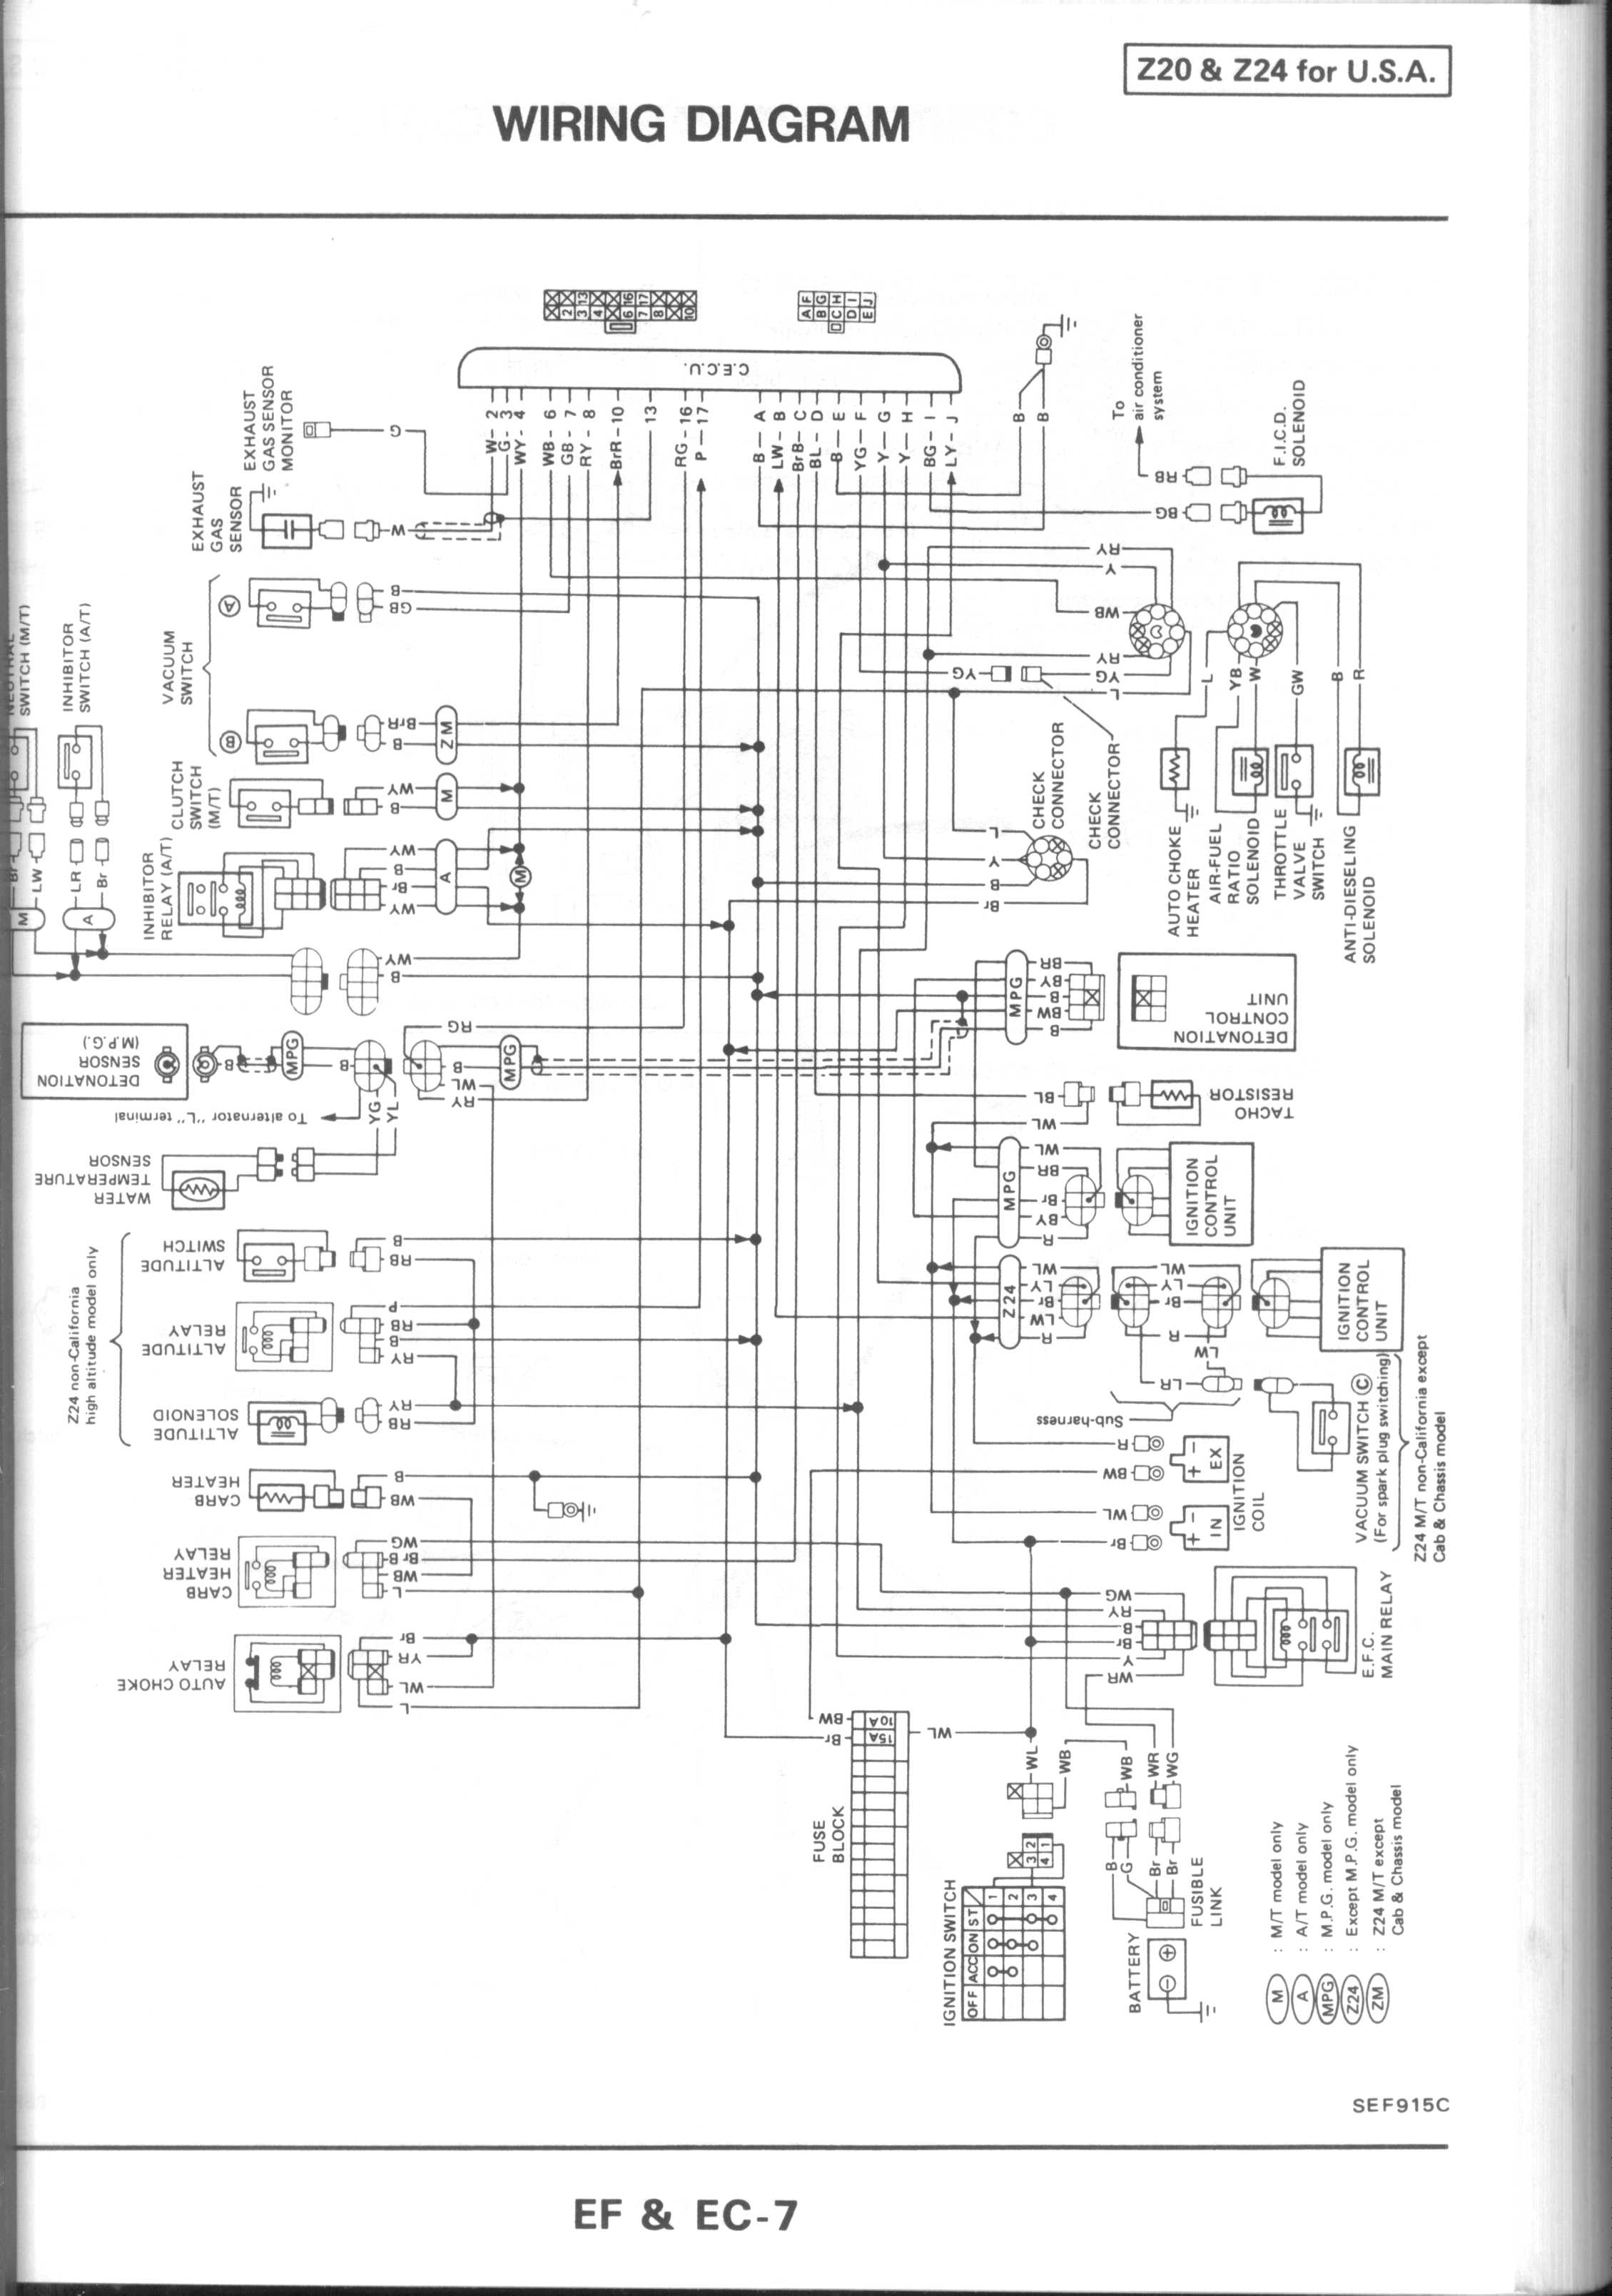 1988 Nissan Pickup Wiring Diagram Data 1997 Ford F150 Tail Light Truck 1993